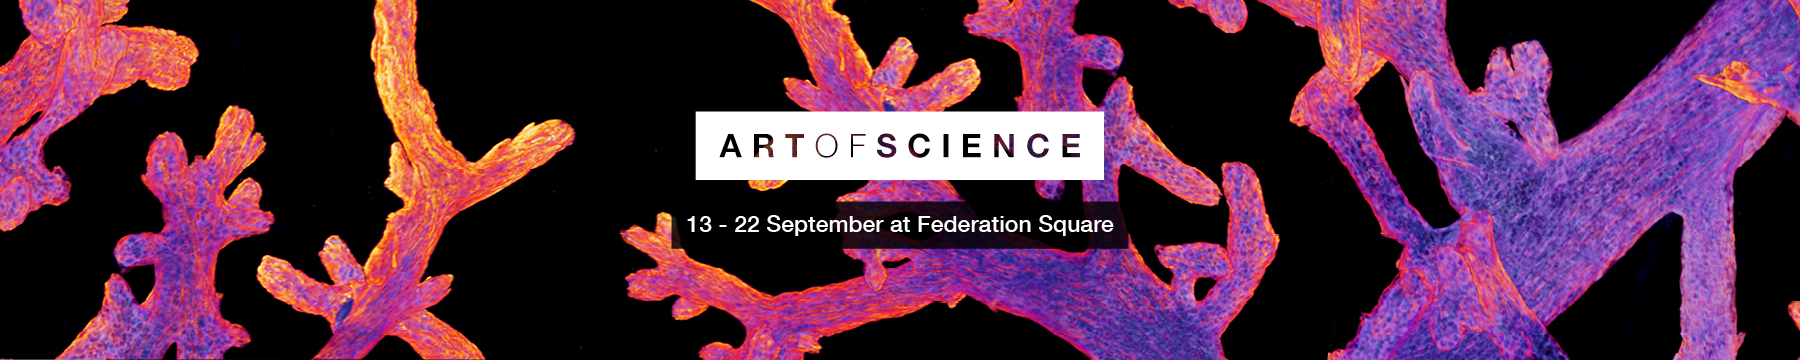 Art of Science 2019 event promotion